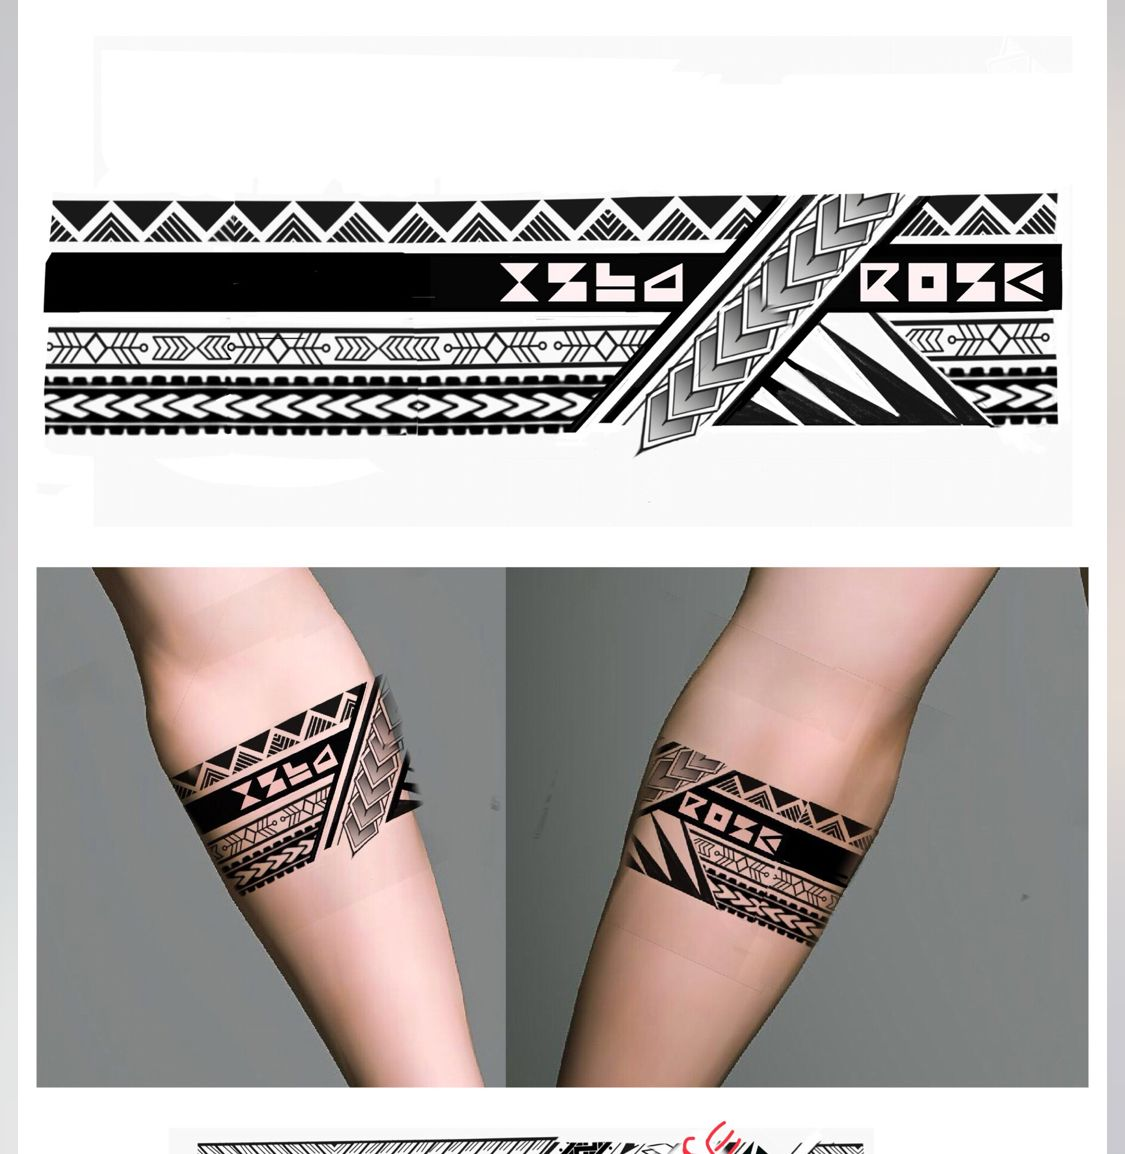 Tribal Geometric Armband Tattoo Designs Armband Tattoo Design Forearm Band Tattoos Tribal Armband Tattoo